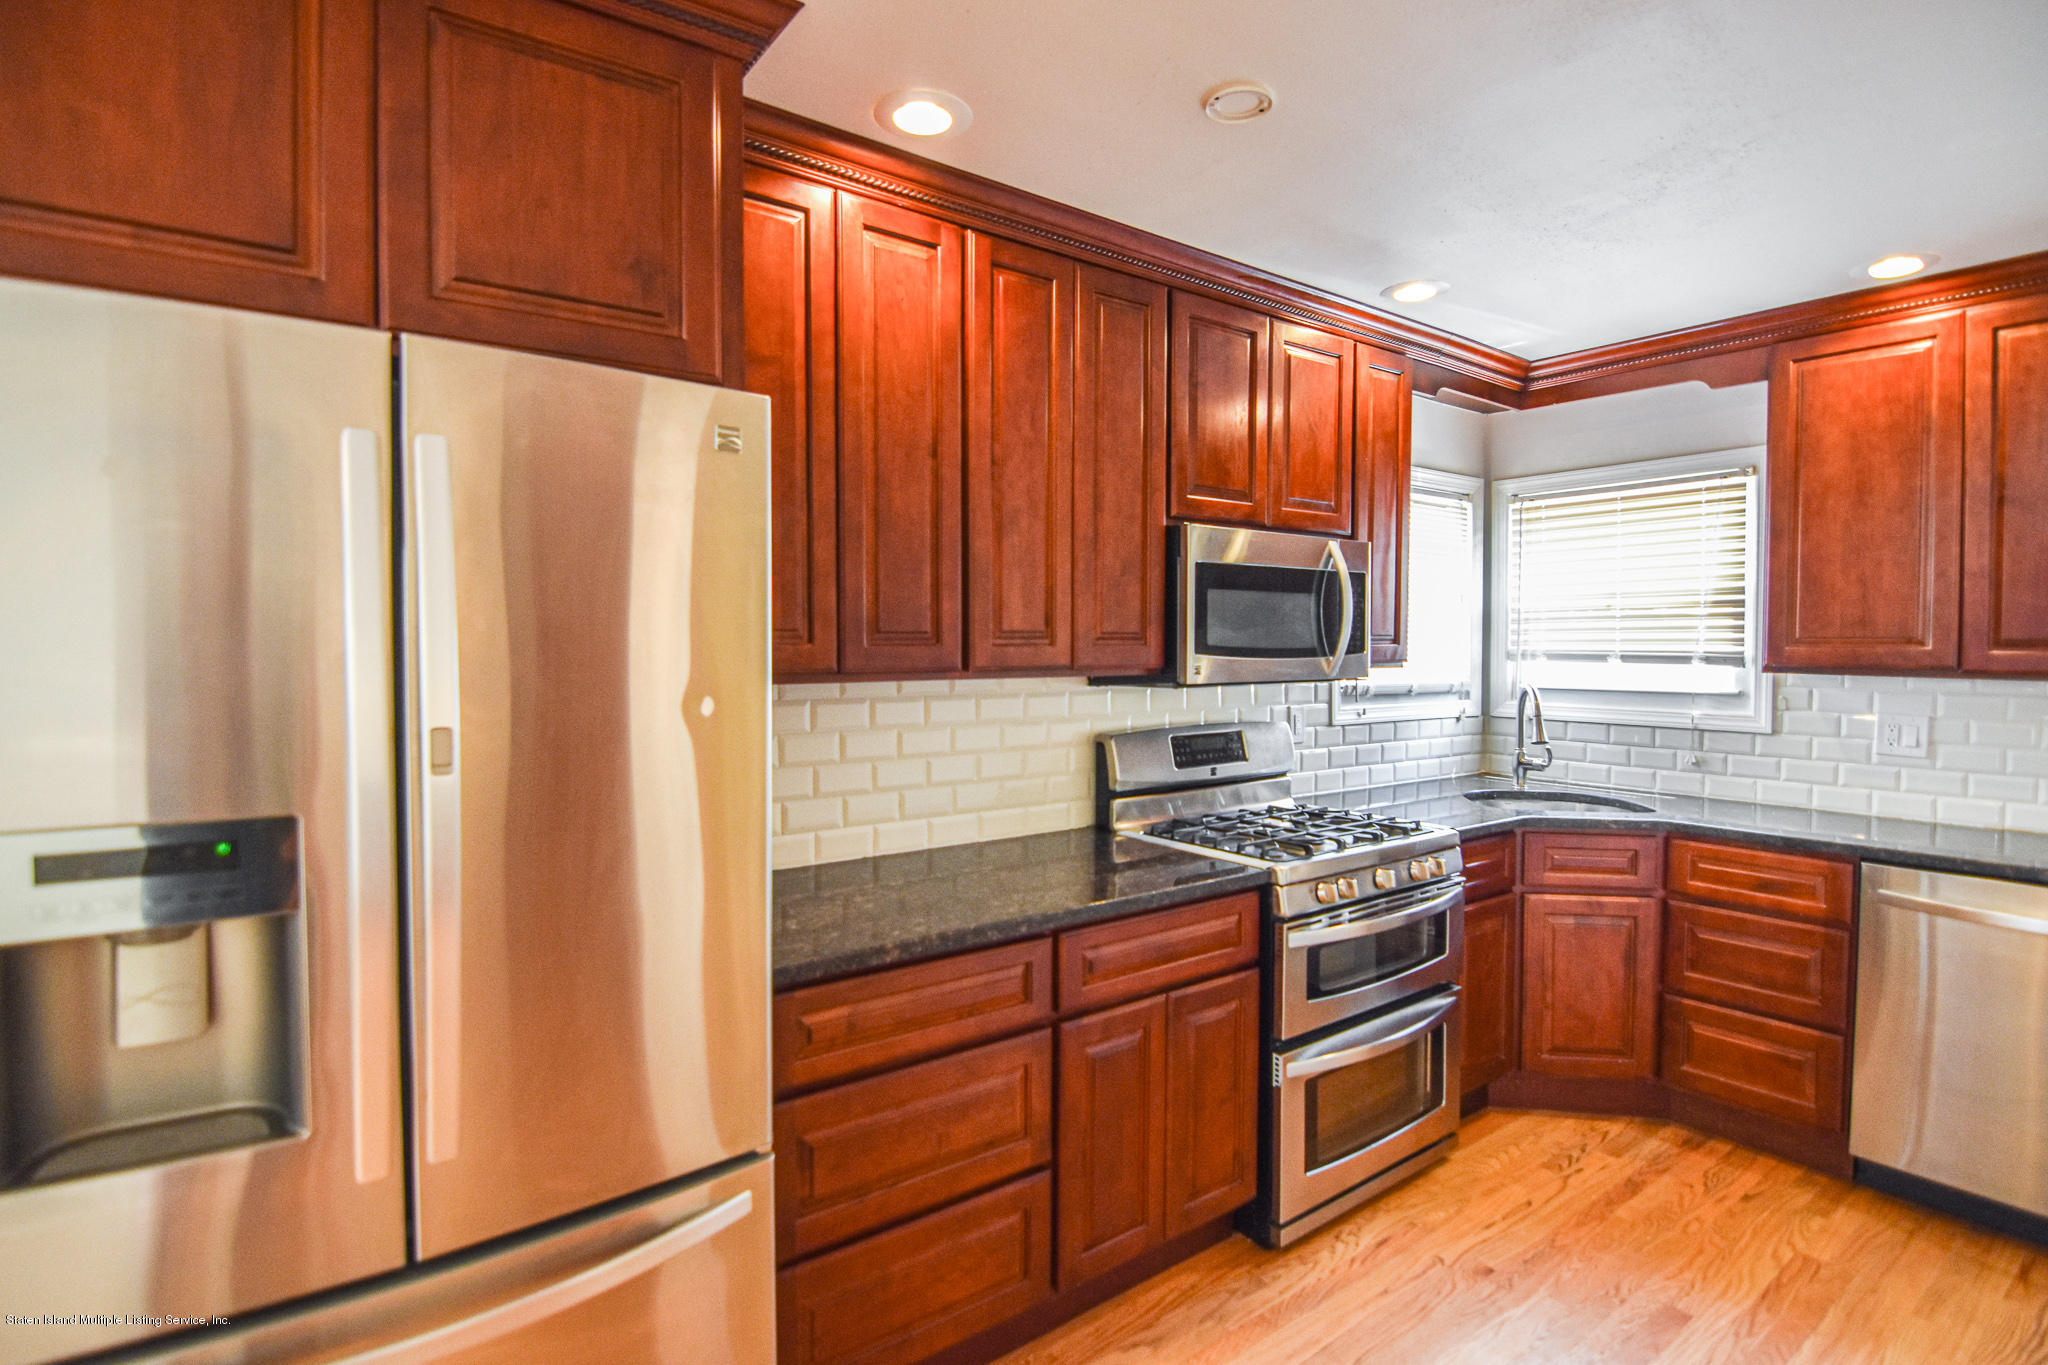 Single Family - Semi-Attached 12 Ebey Lane  Staten Island, NY 10312, MLS-1131132-6